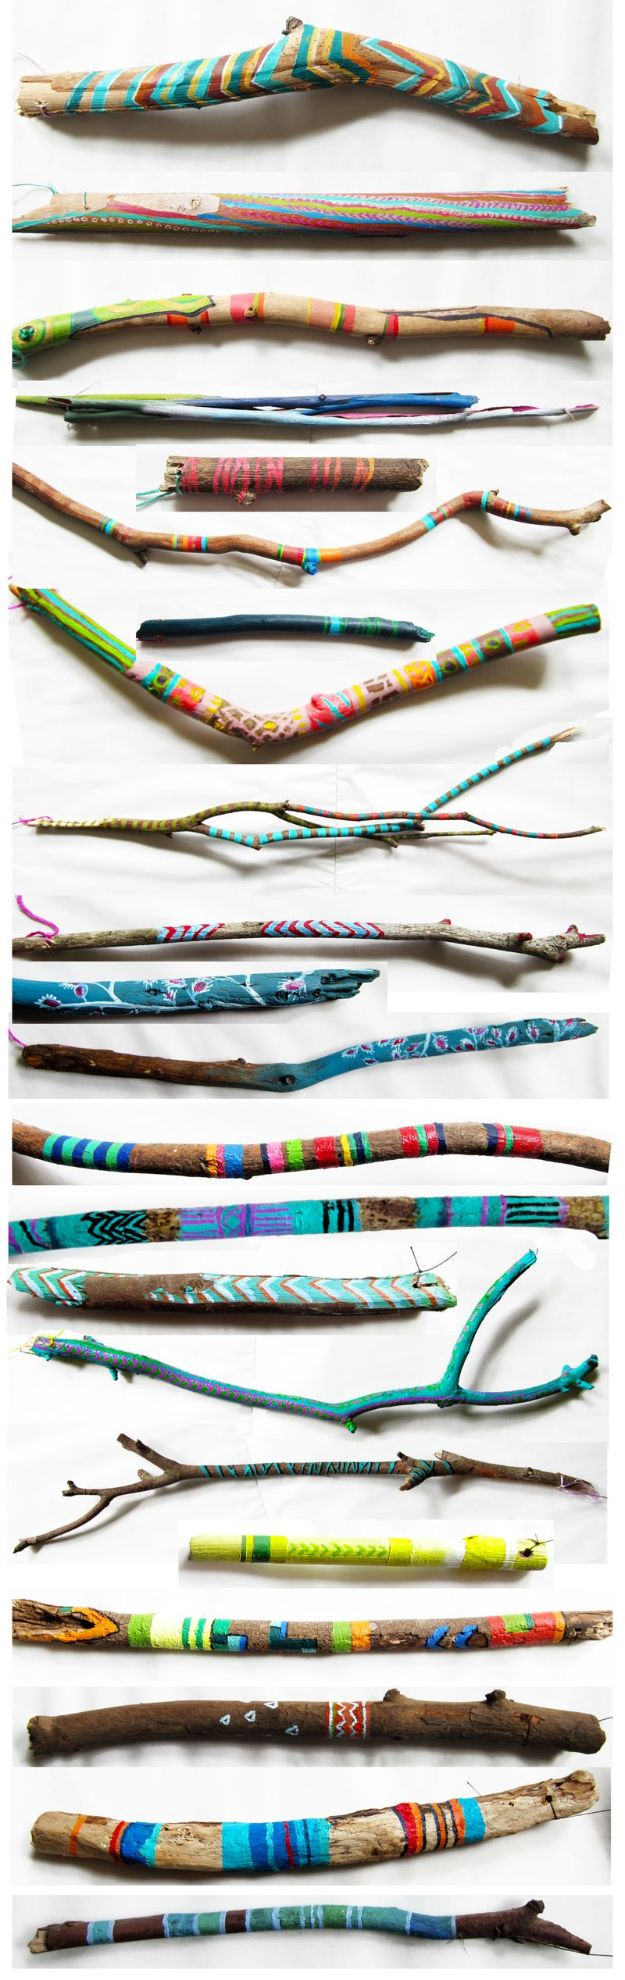 DIY Boho Decor Ideas - Painted Boho Sticks - DIY Bedroom Ideas - Cheap Hippie Crafts and Bohemian Wall Art - Easy Upcycling Projects for Living Room, Bathroom, Kitchen #boho #diy #diydecor